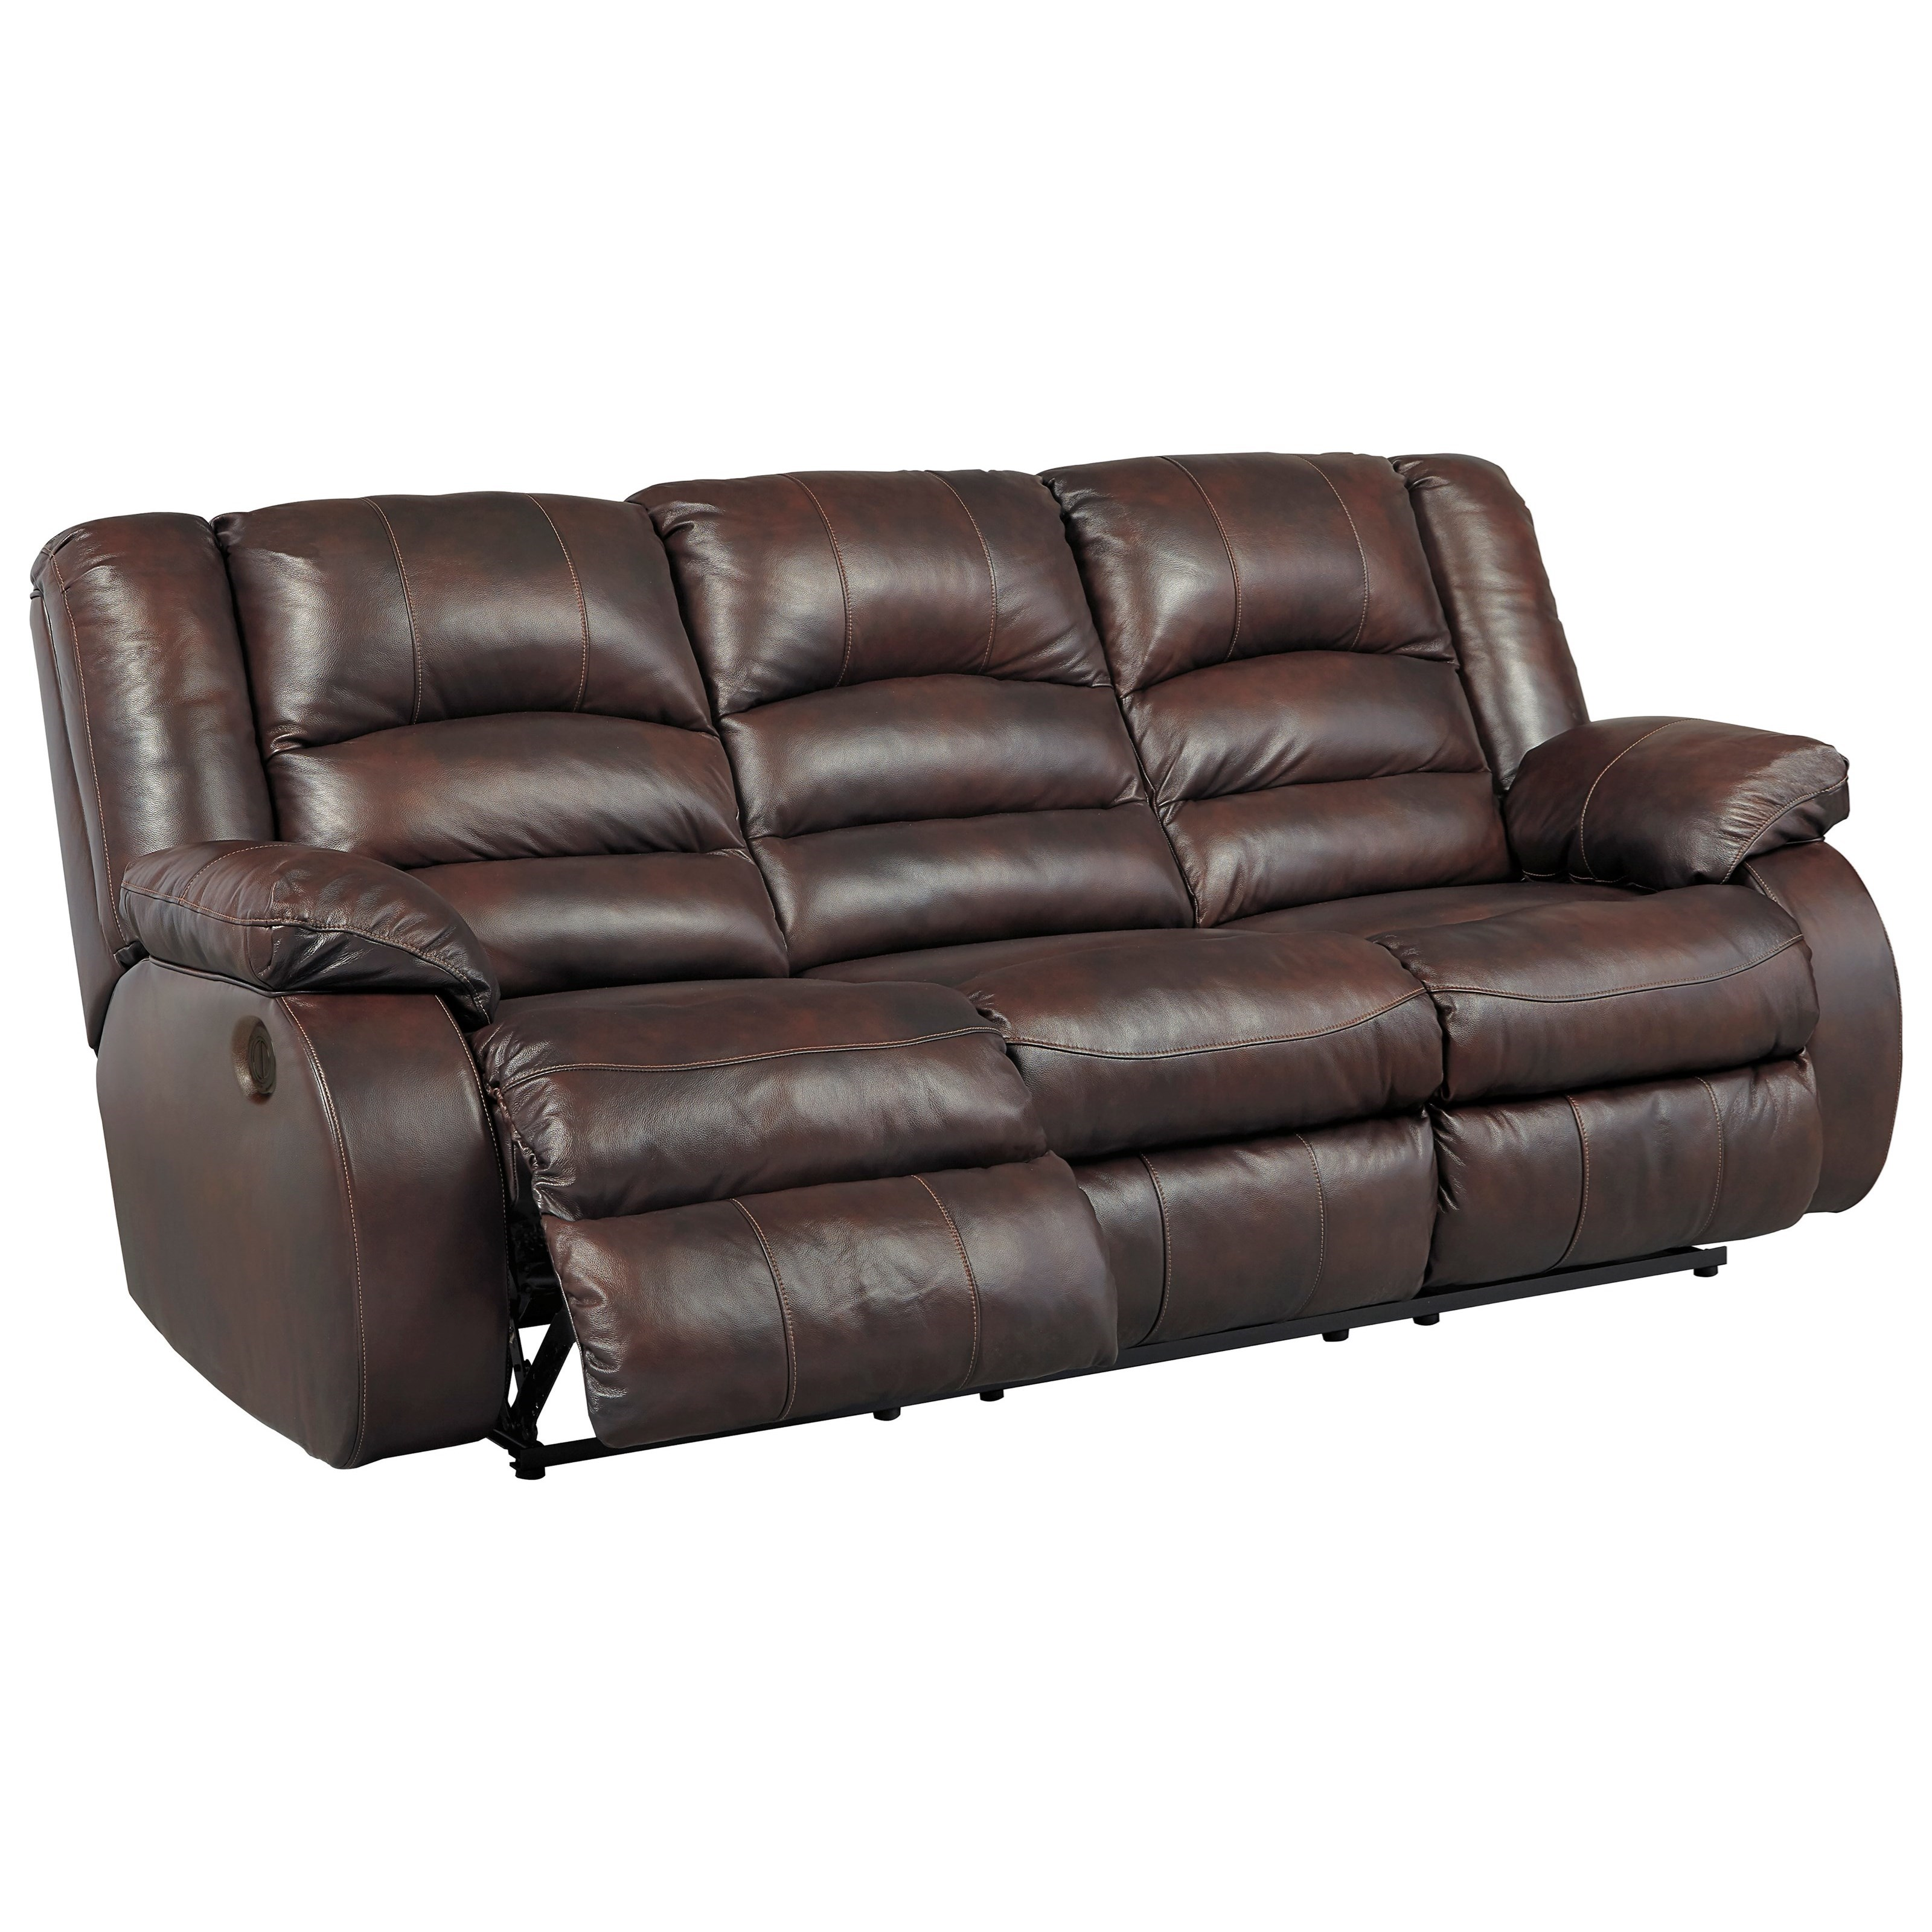 3 pc sectional sofa with recliners funky beds ashley signature design levelland piece leather match